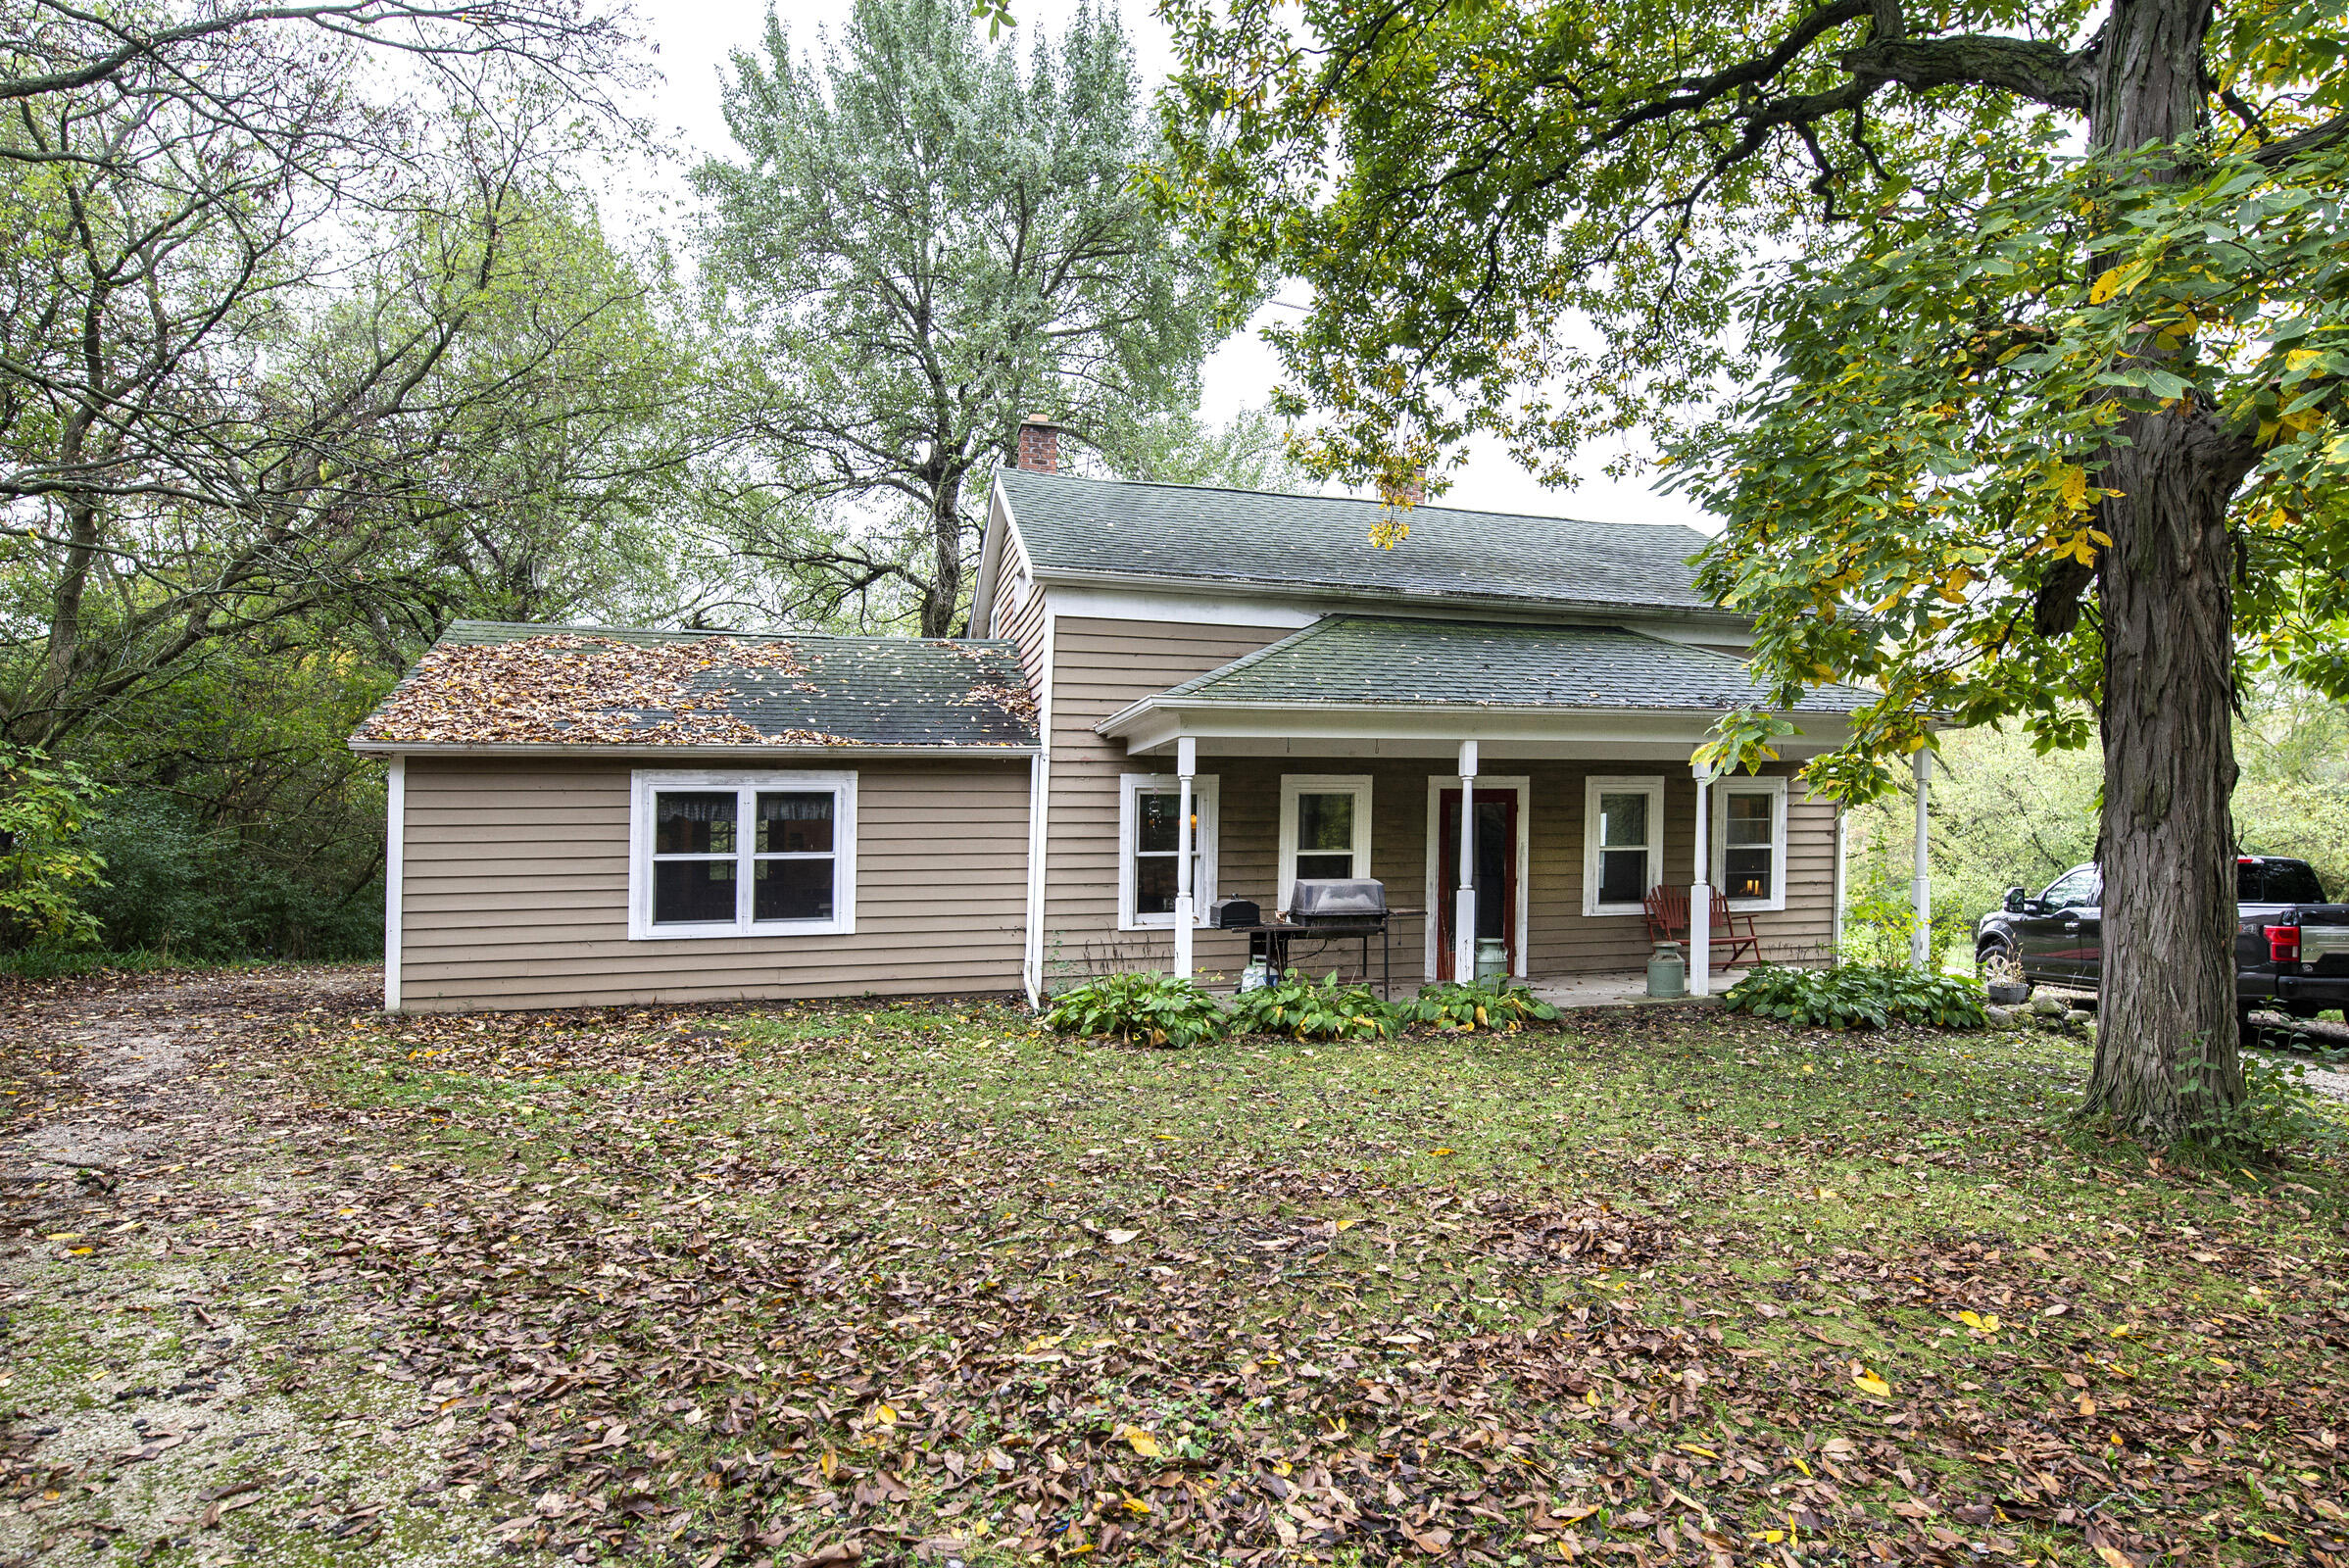 S47W22777 Lawnsdale Rd, Waukesha, Wisconsin 53189, 2 Bedrooms Bedrooms, 5 Rooms Rooms,1 BathroomBathrooms,Single-Family,For Sale,Lawnsdale Rd,1767906